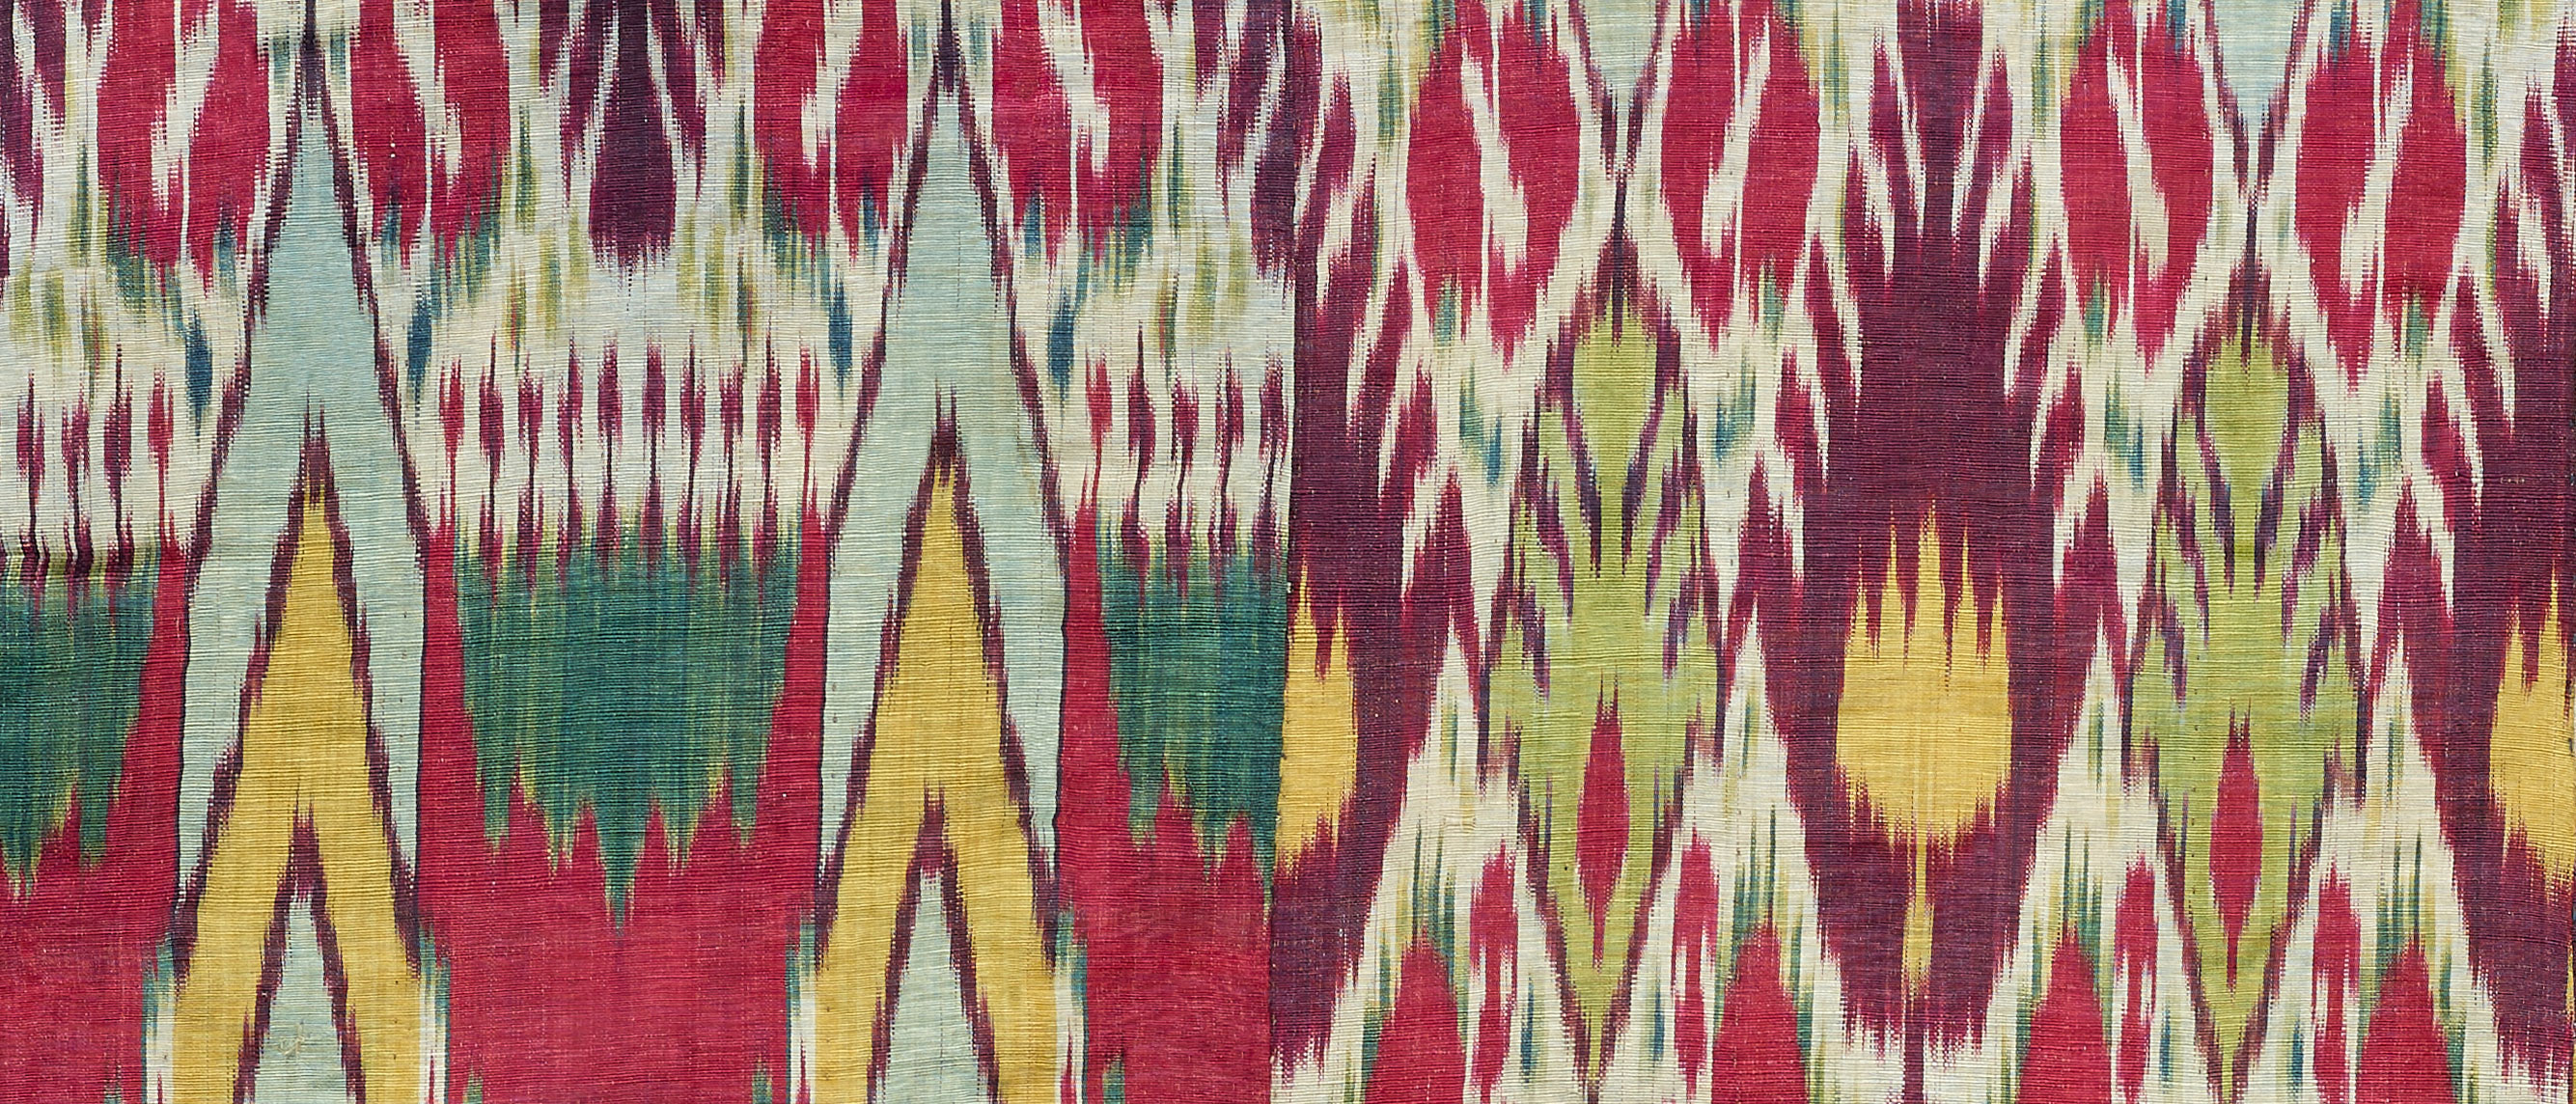 detail from an Ikat